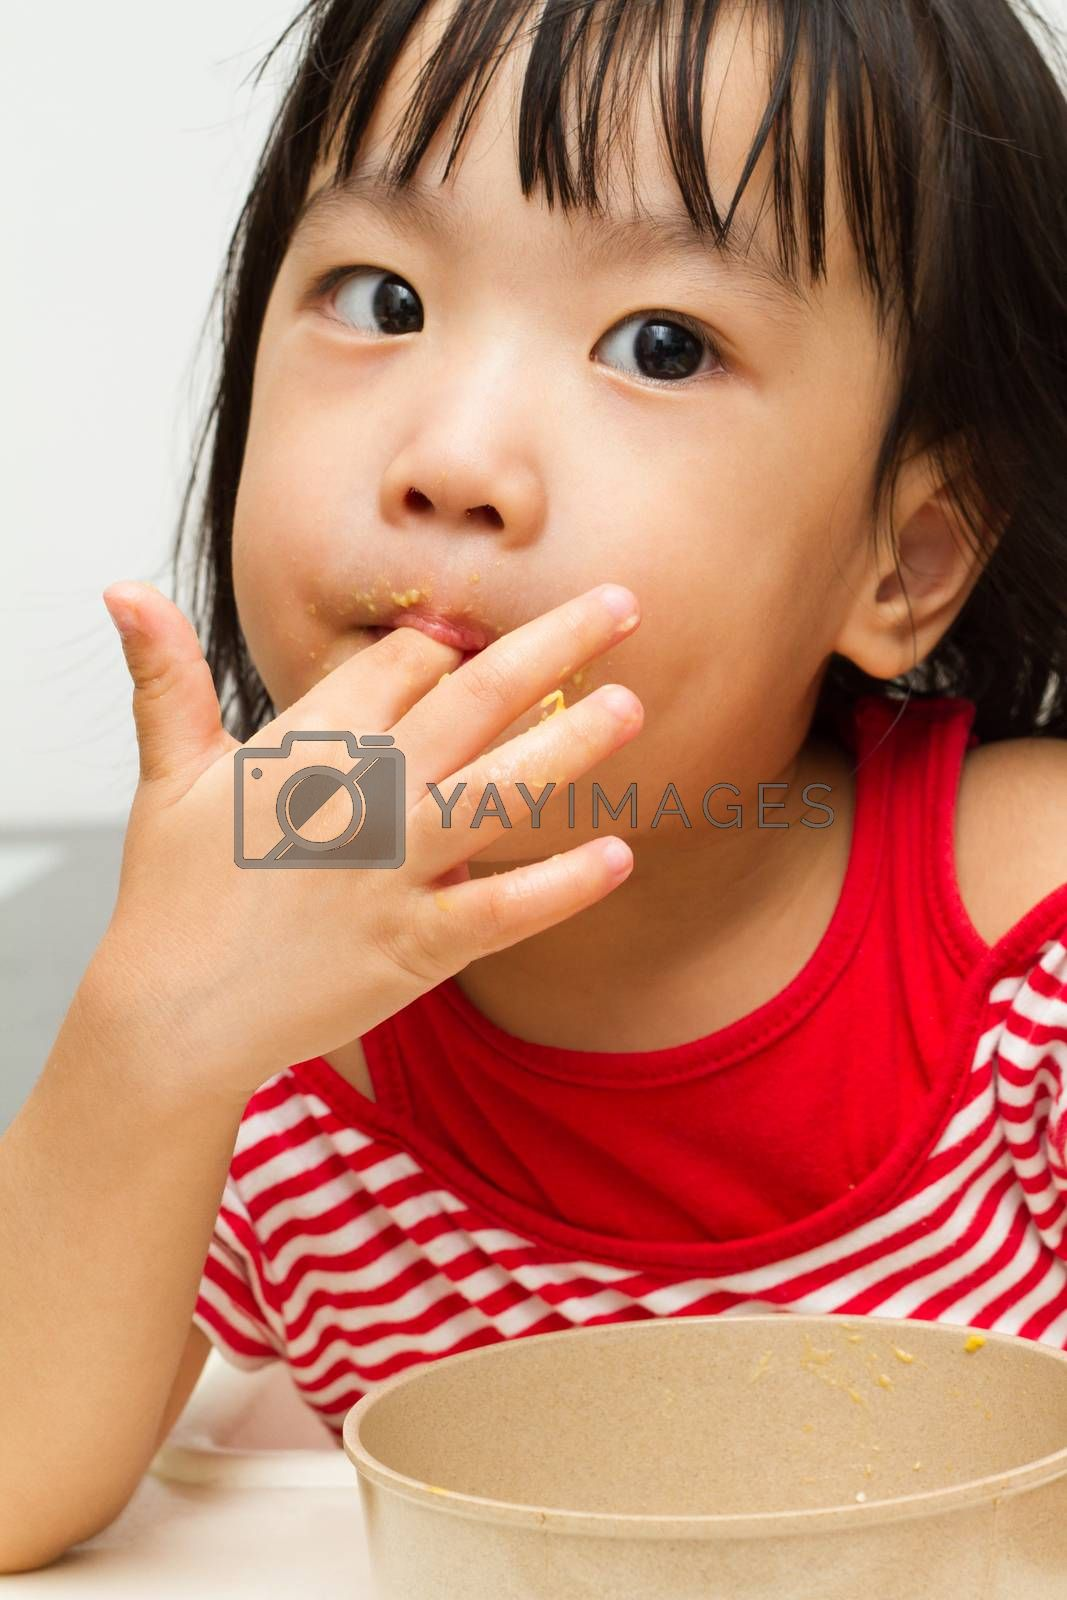 Royalty free image of Chinese Girl Eating Durian by kiankhoon